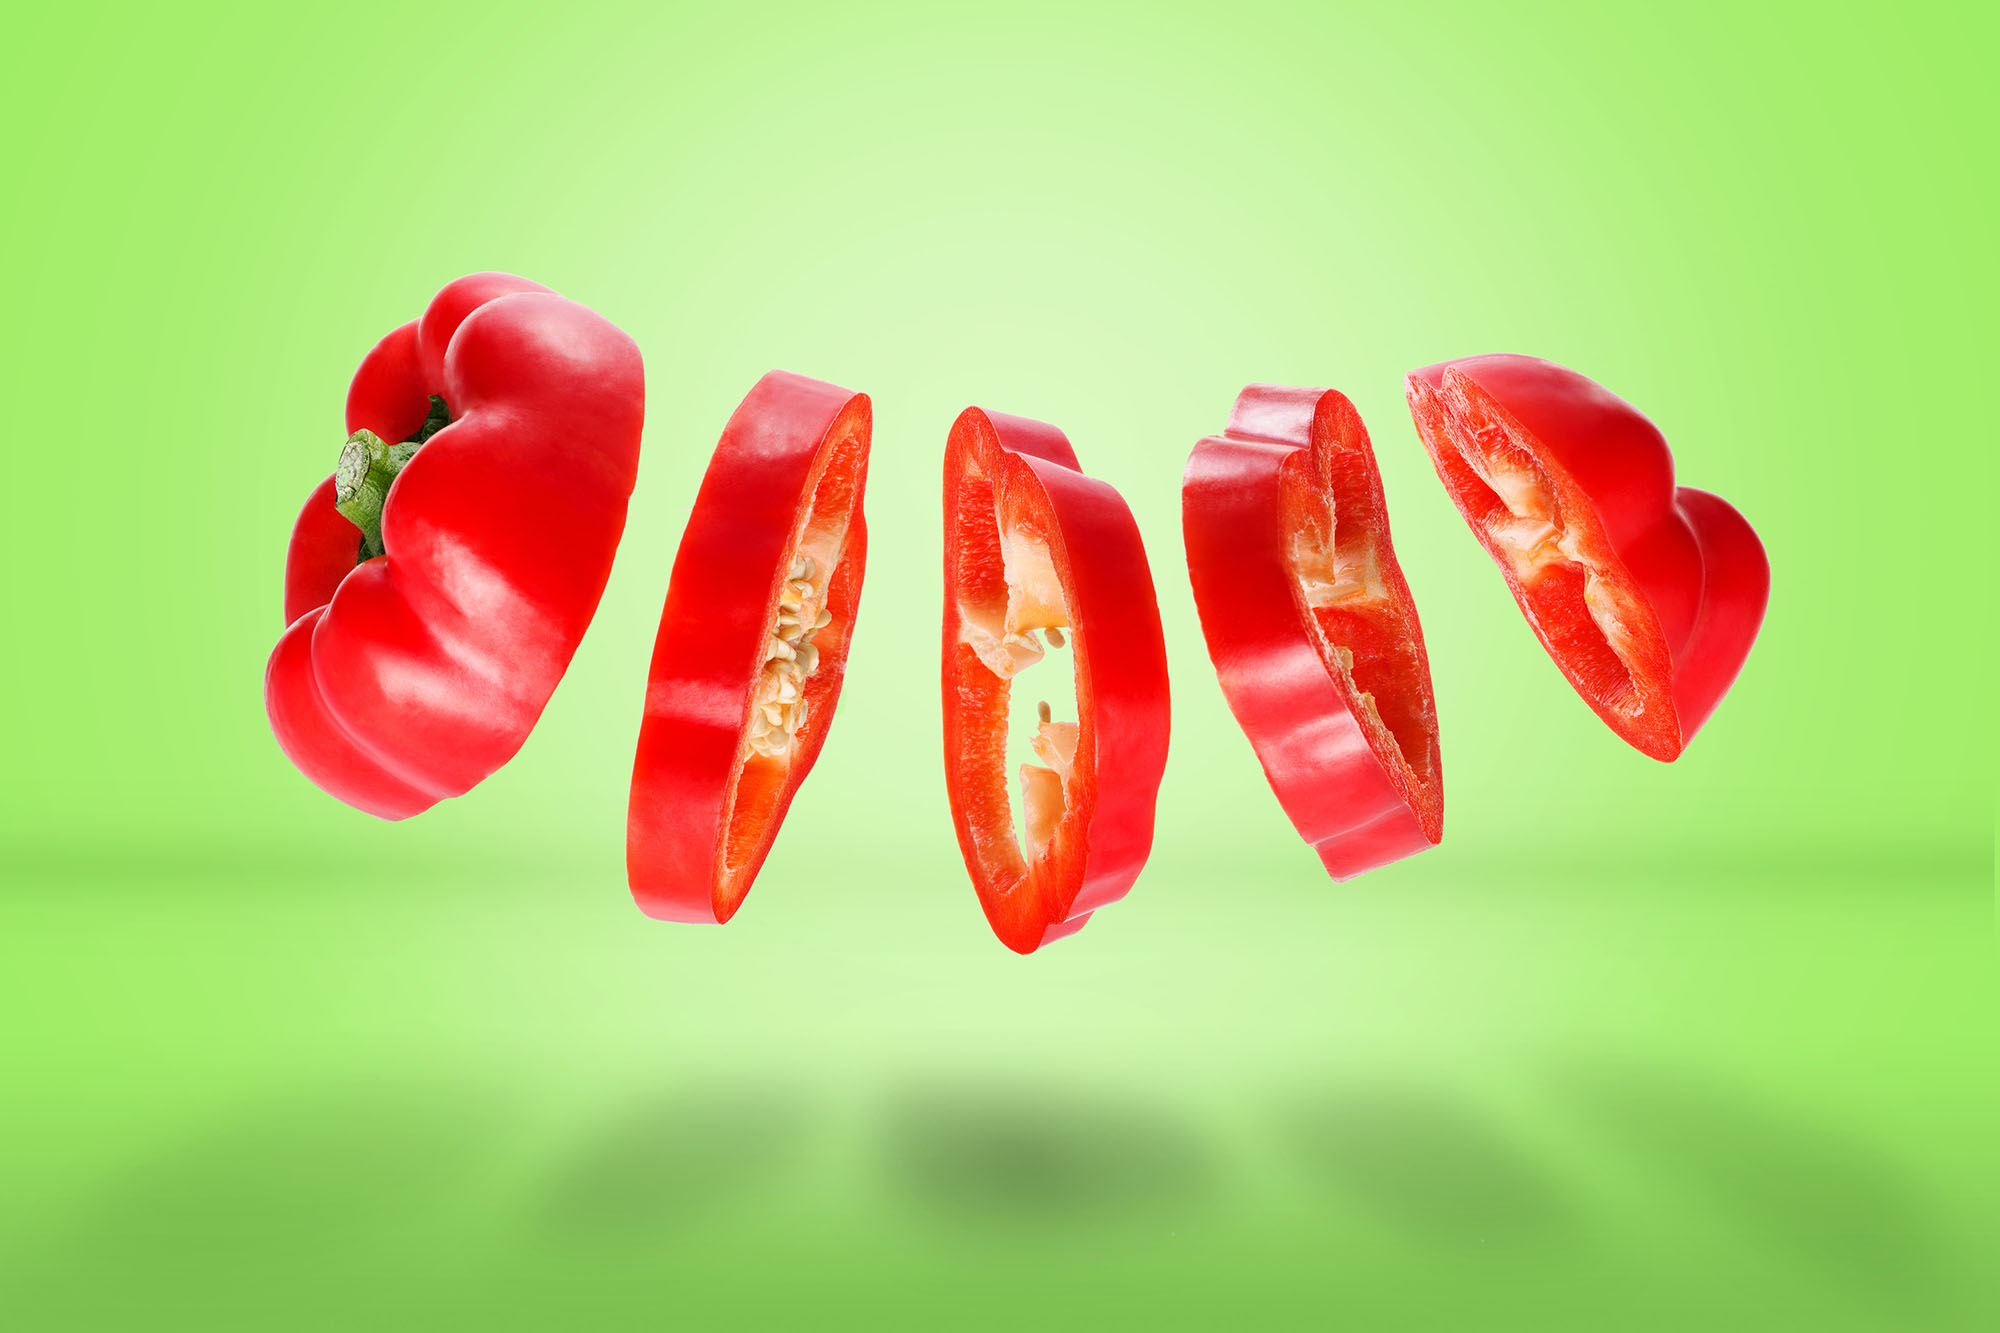 Ian Knaggs Commercial Still Life Photographer - Sliced Red Pepper